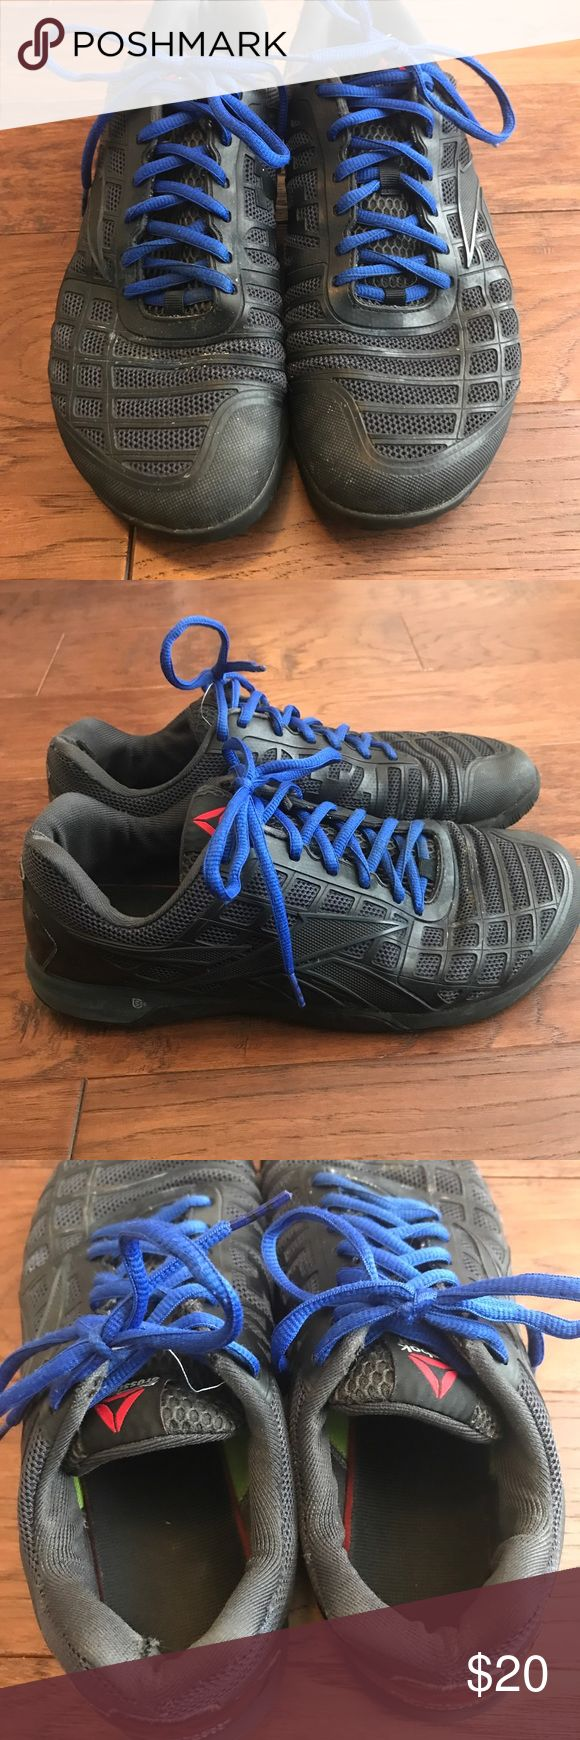 Reebok Nano 3 Crossfit shoe Mens Black 11 sneaker These are in used condition and priced accordingly. Still have life in them, just clearing out the closet. Smoke free home and I ship FAST! Reebok Shoes Athletic Shoes